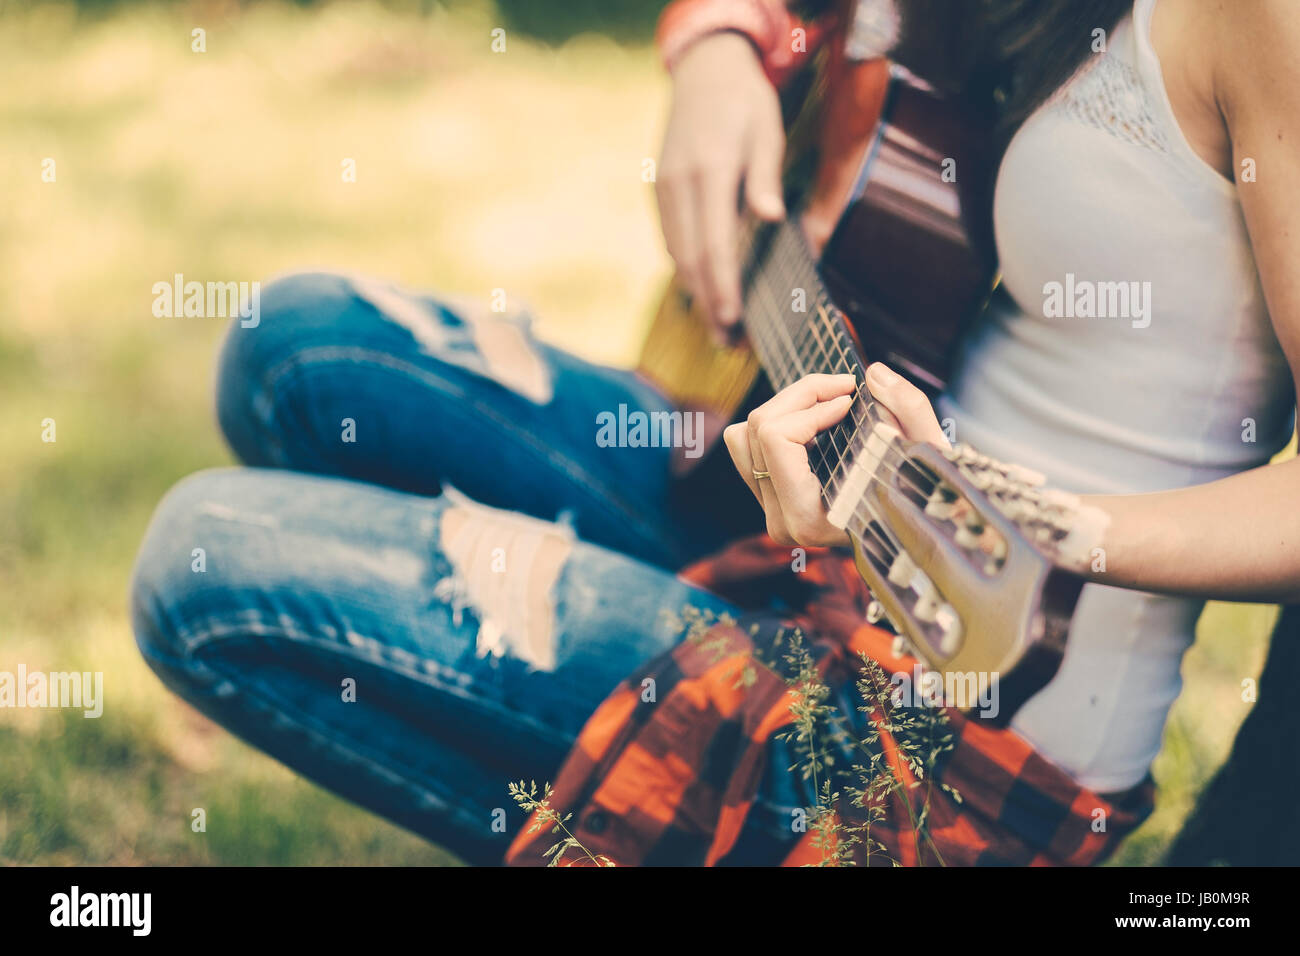 Woman with guitar Festival at party Photo Stock